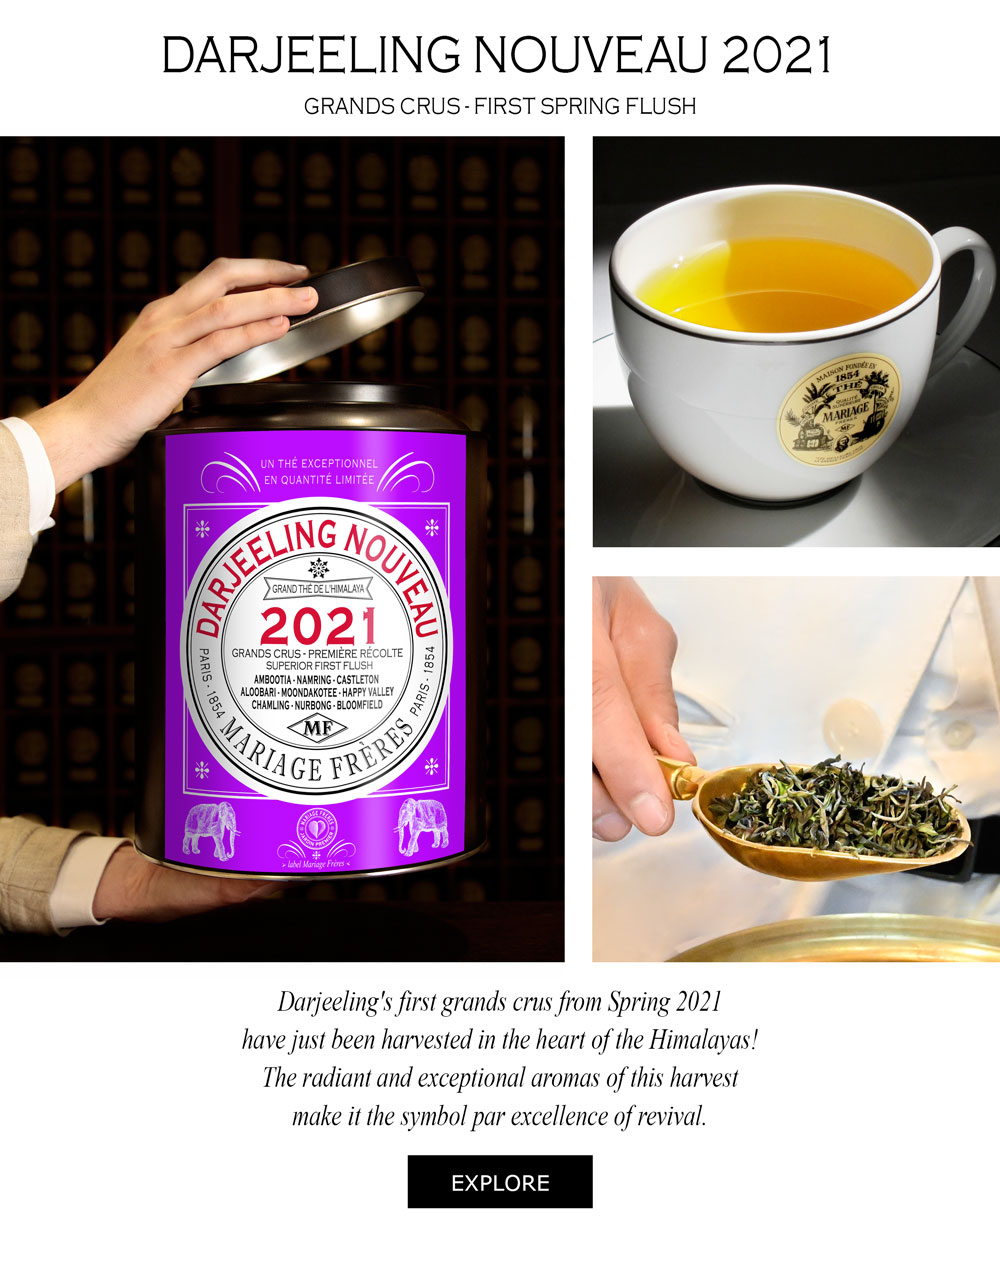 NAMRING KING UPPER® Darjeeling First Flush 2021